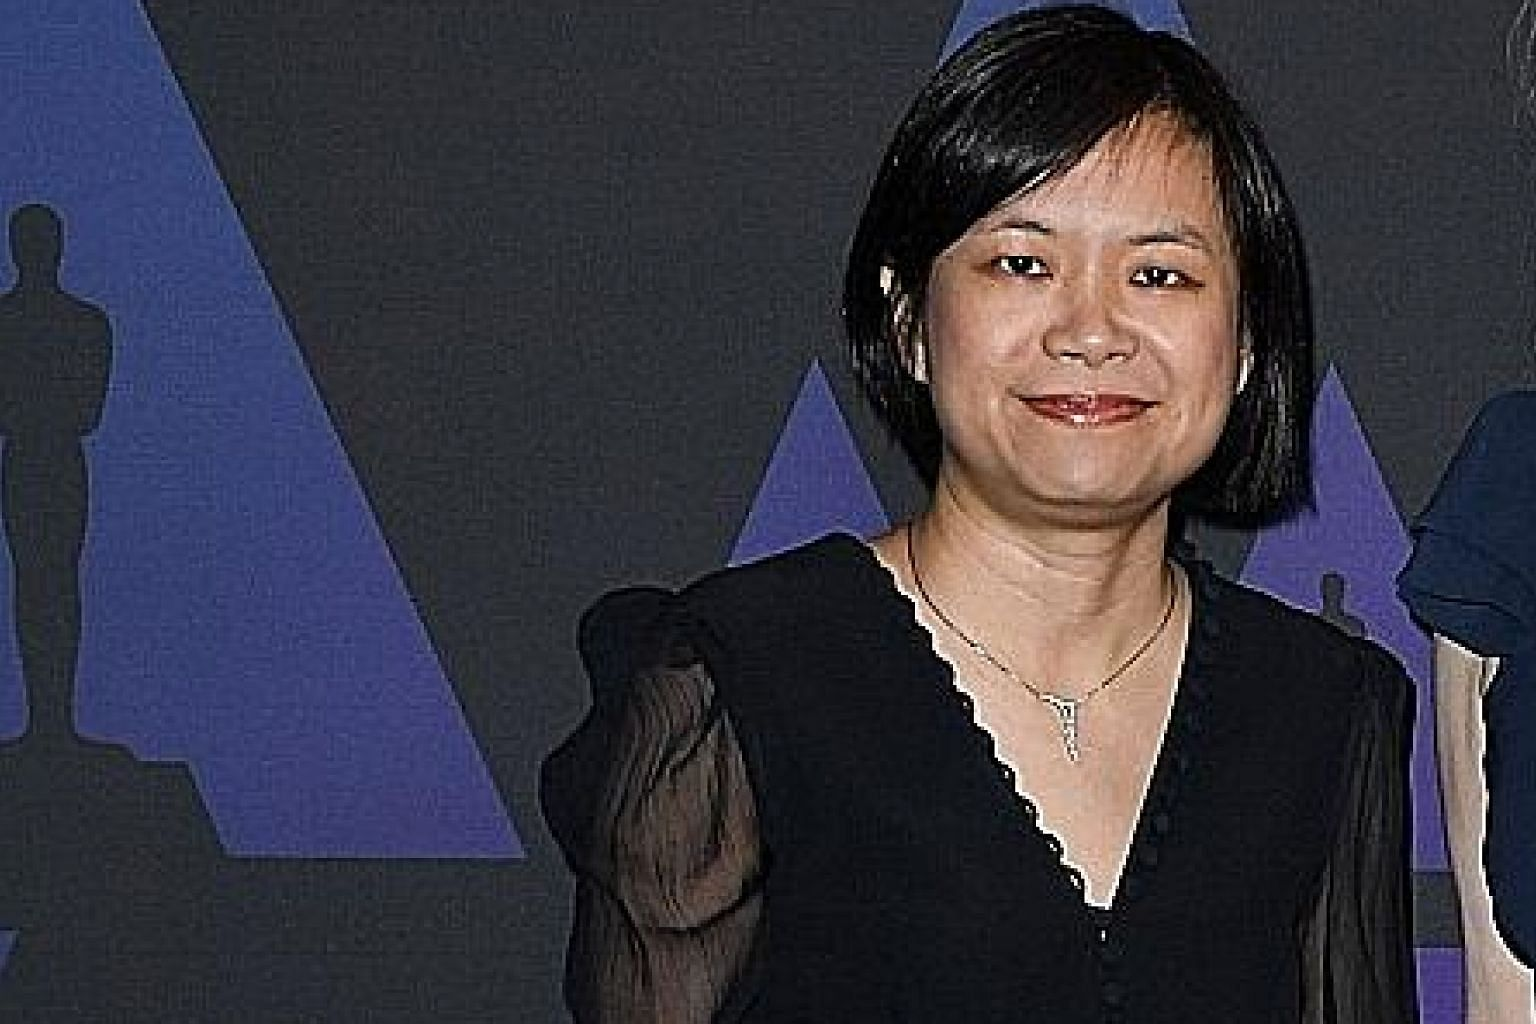 Sound editor Ai-Ling Lee picked up Oscar nominations for Sound Editing and Sound Mixing for the Neil Armstrong biopic First Man.